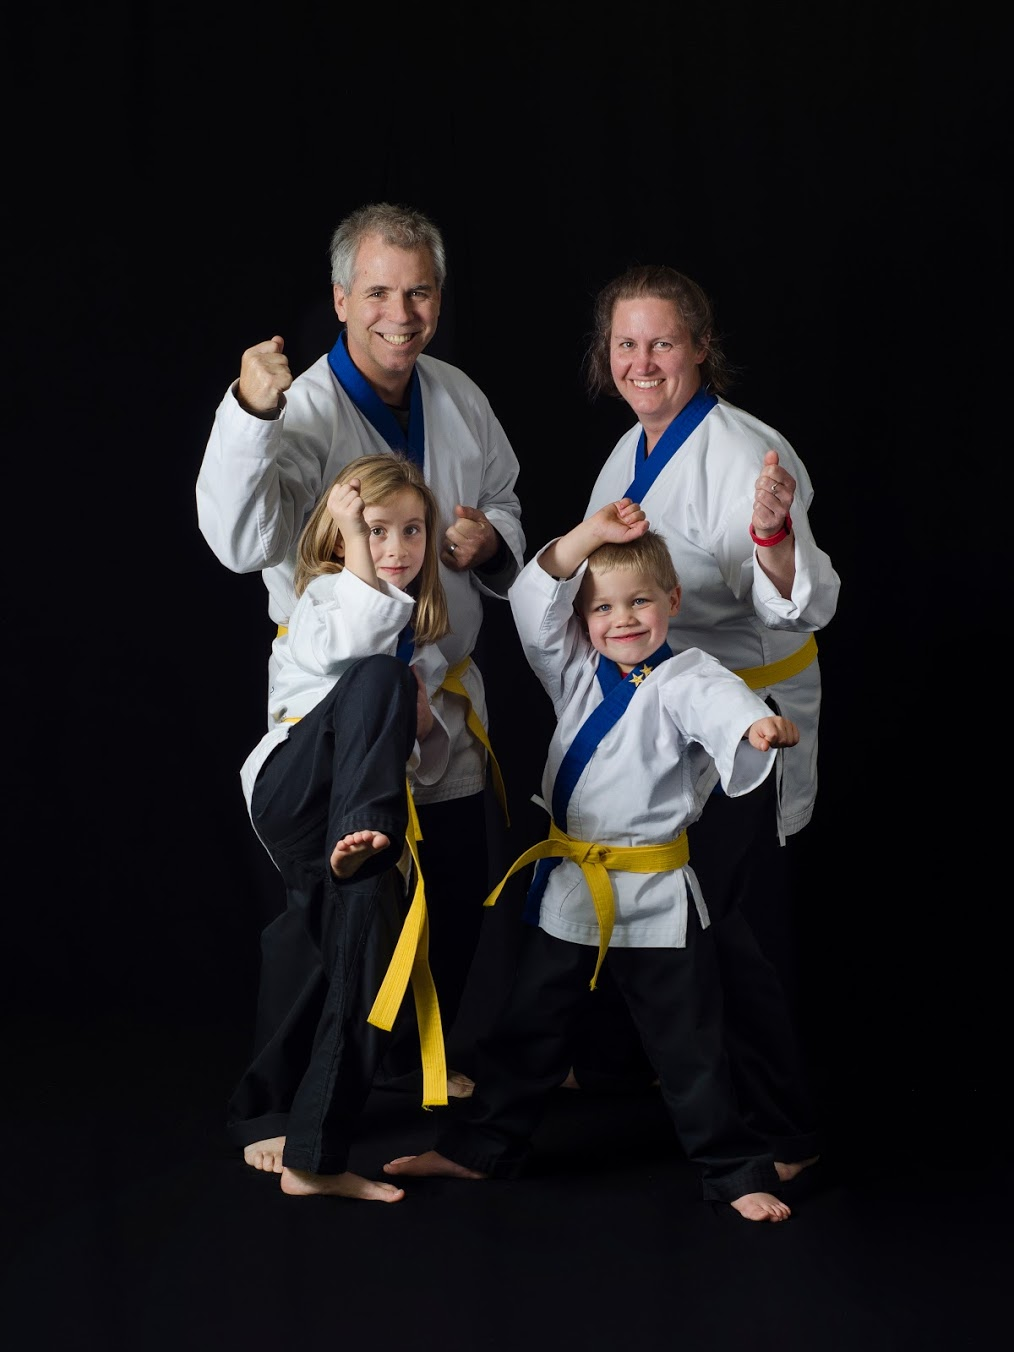 Parents doing karate with their kids